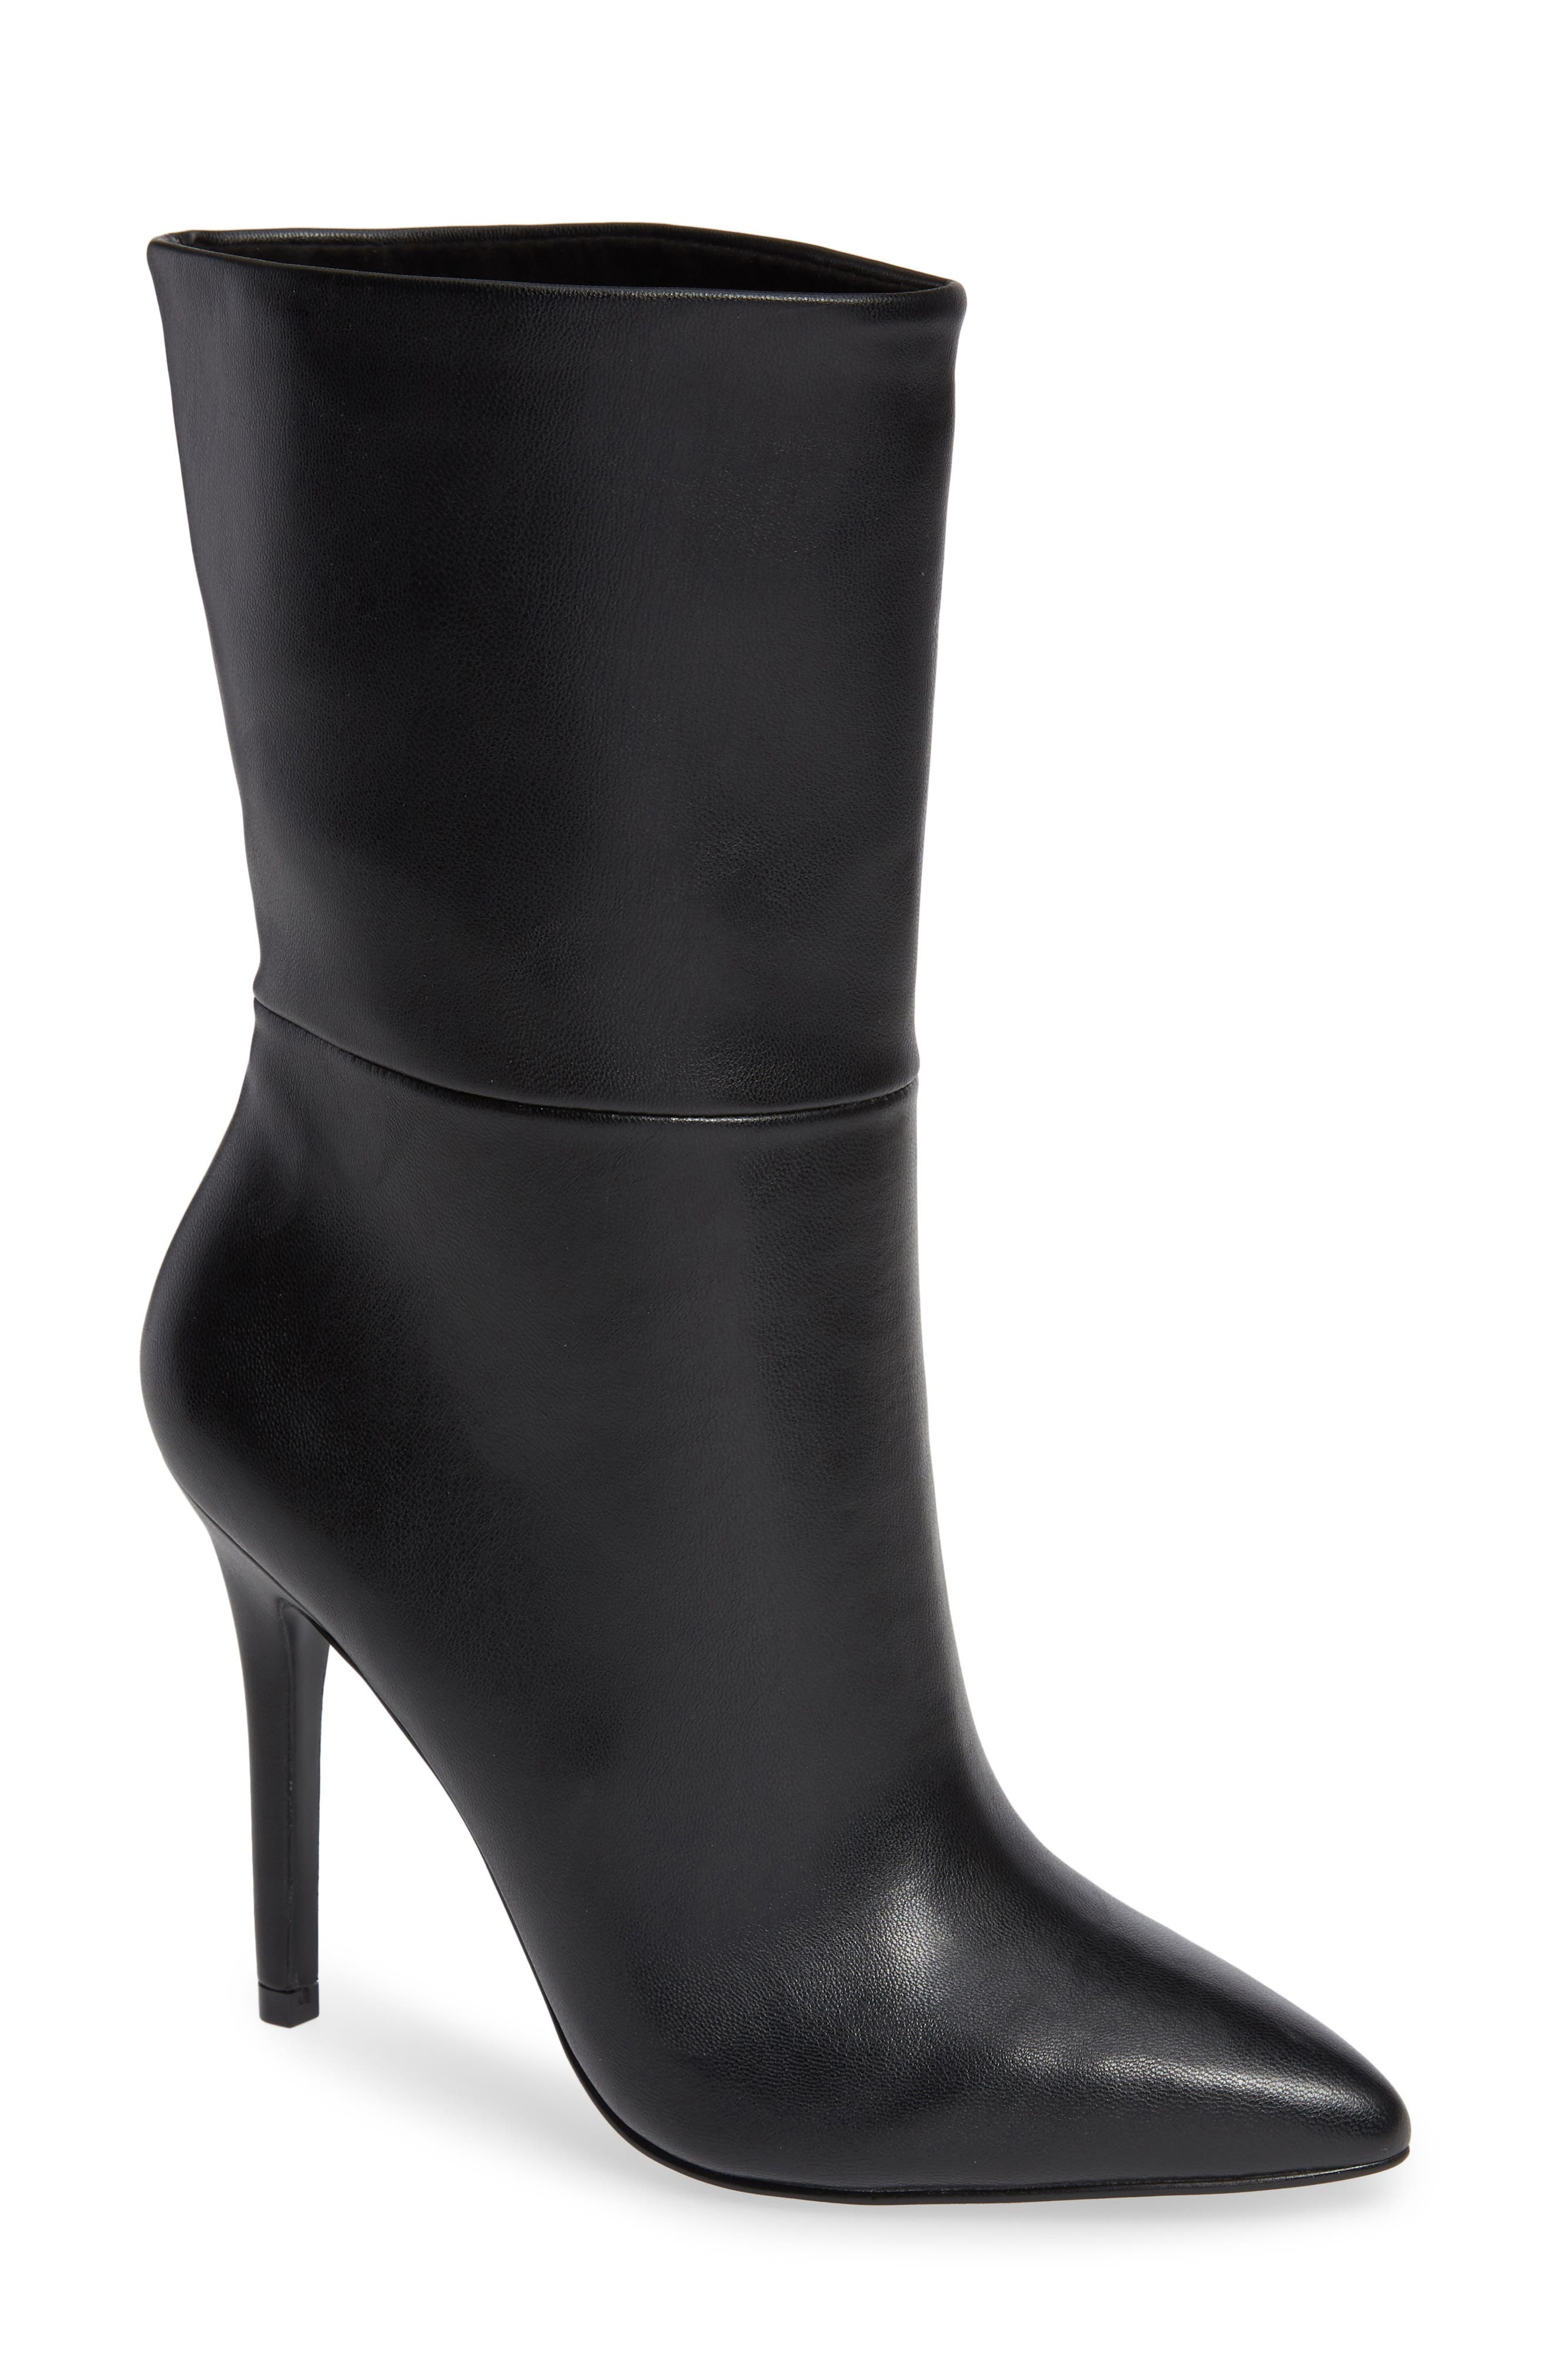 CHARLES BY CHARLES DAVID, Palisades Bootie, Main thumbnail 1, color, BLACK FAUX LEATHER